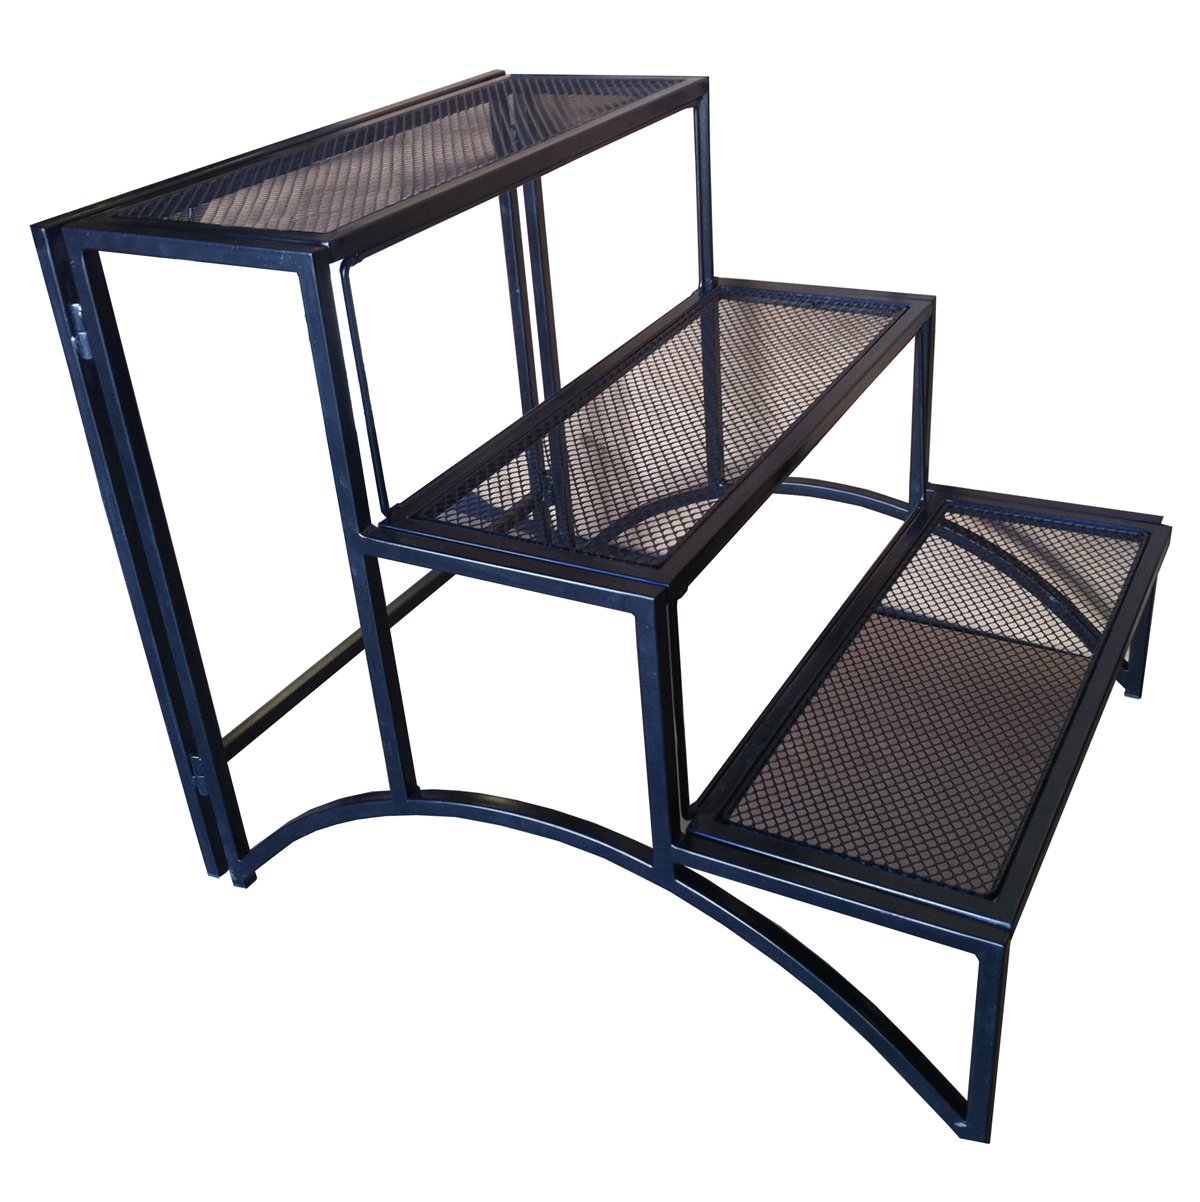 Exceptionnel Amazon.com : Pangaea Home And Garden Folding Rectangular Three Layer Iron  Plant Stand : Garden U0026 Outdoor